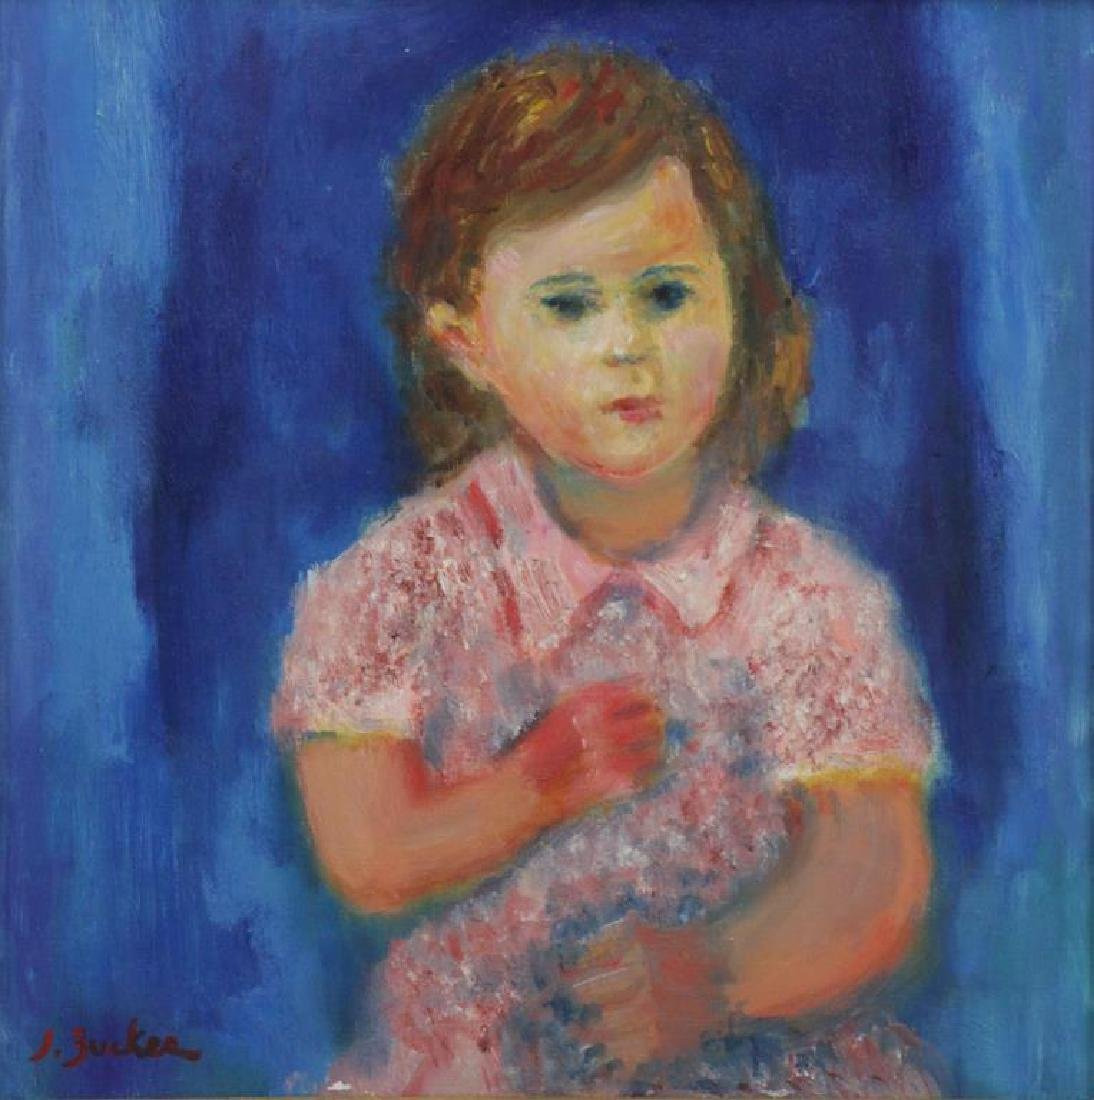 ZUCKER, Jacques. Oil on Canvas. Portrait of a Girl